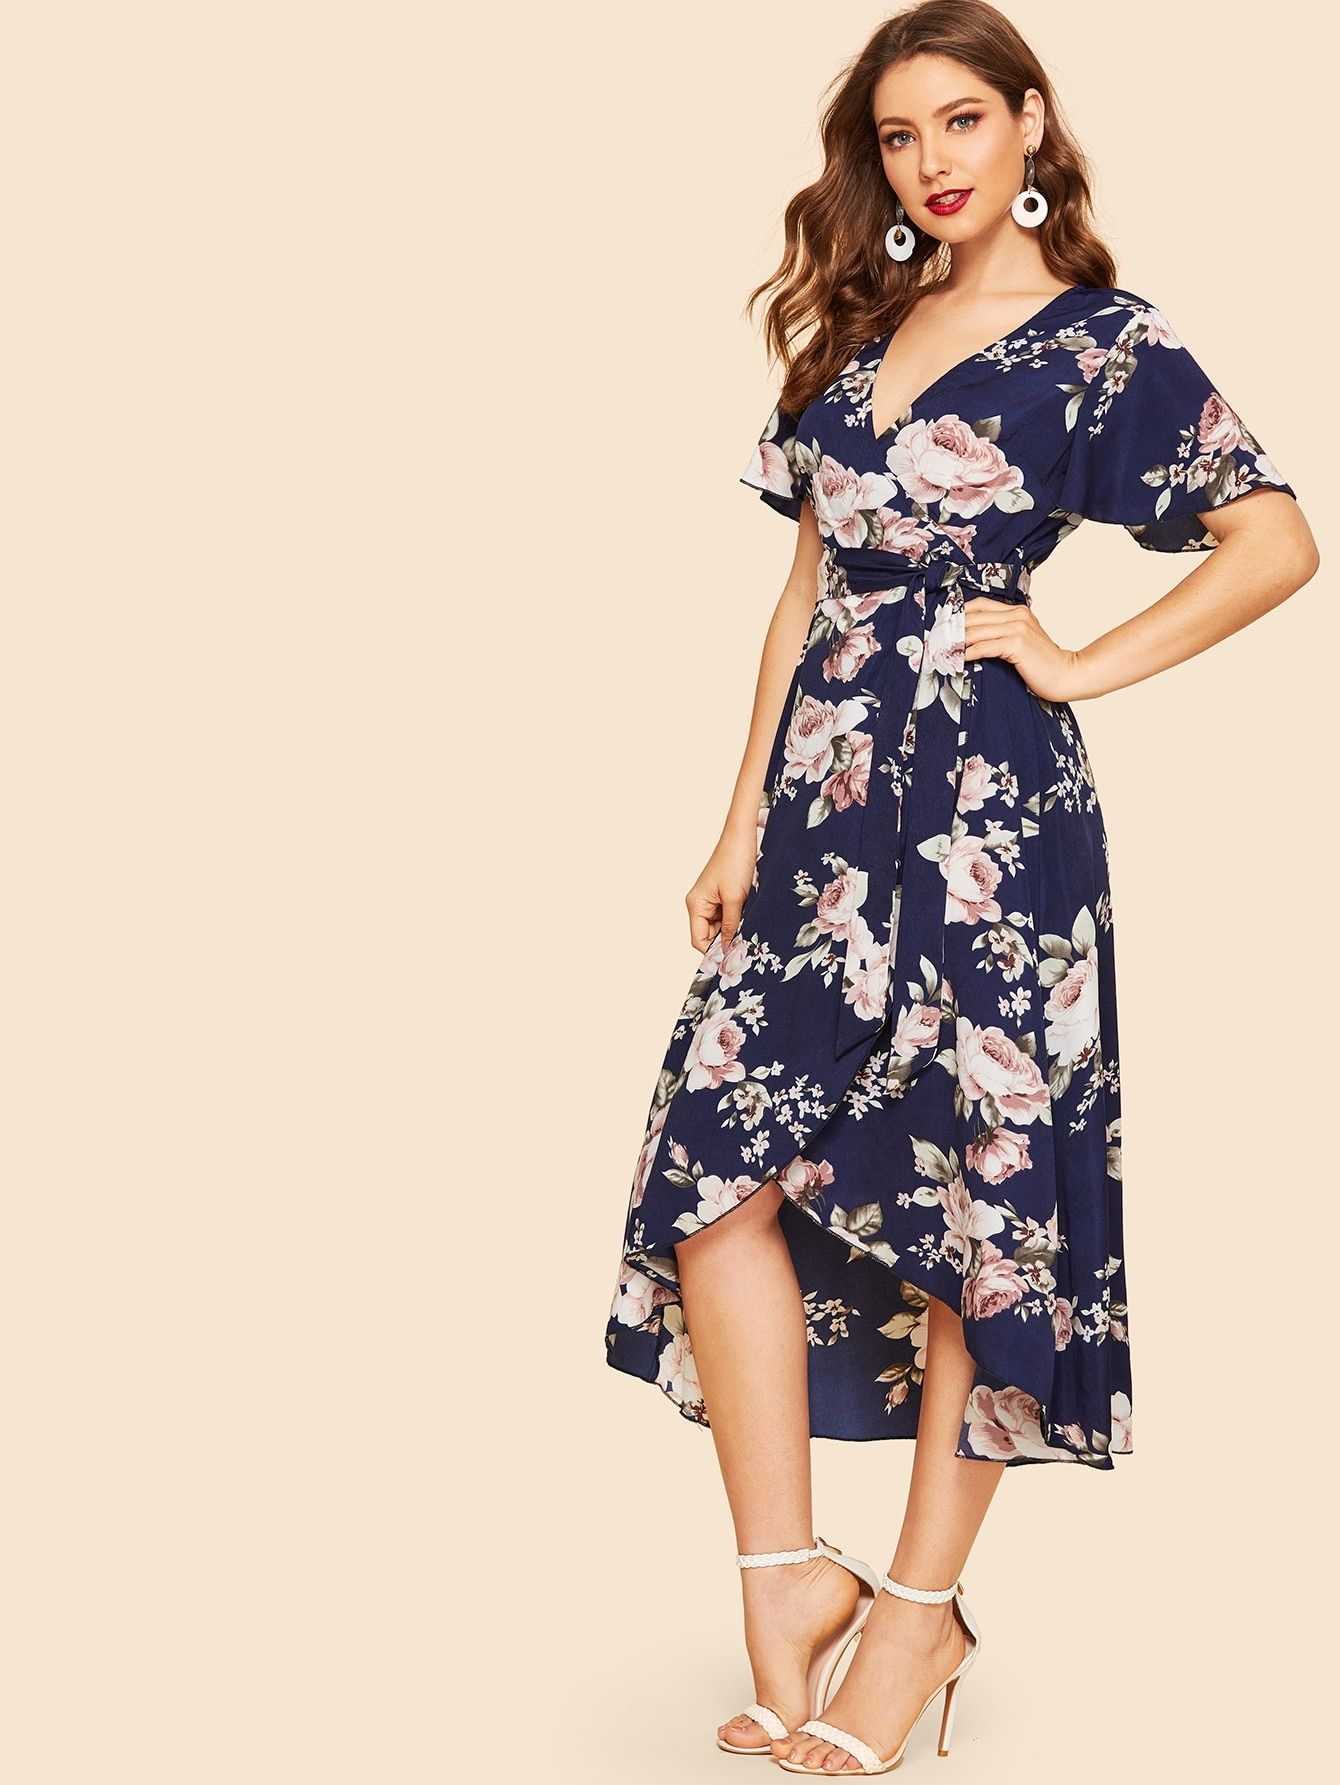 6e9b11c7eb16 Boho A Line Floral Fit and Flare Asymmetrical Deep V Neck Short Sleeve  Flounce Sleeve High Waist Navy Long Length 50s Wrap Front Self Belted Dip Hem  Floral ...